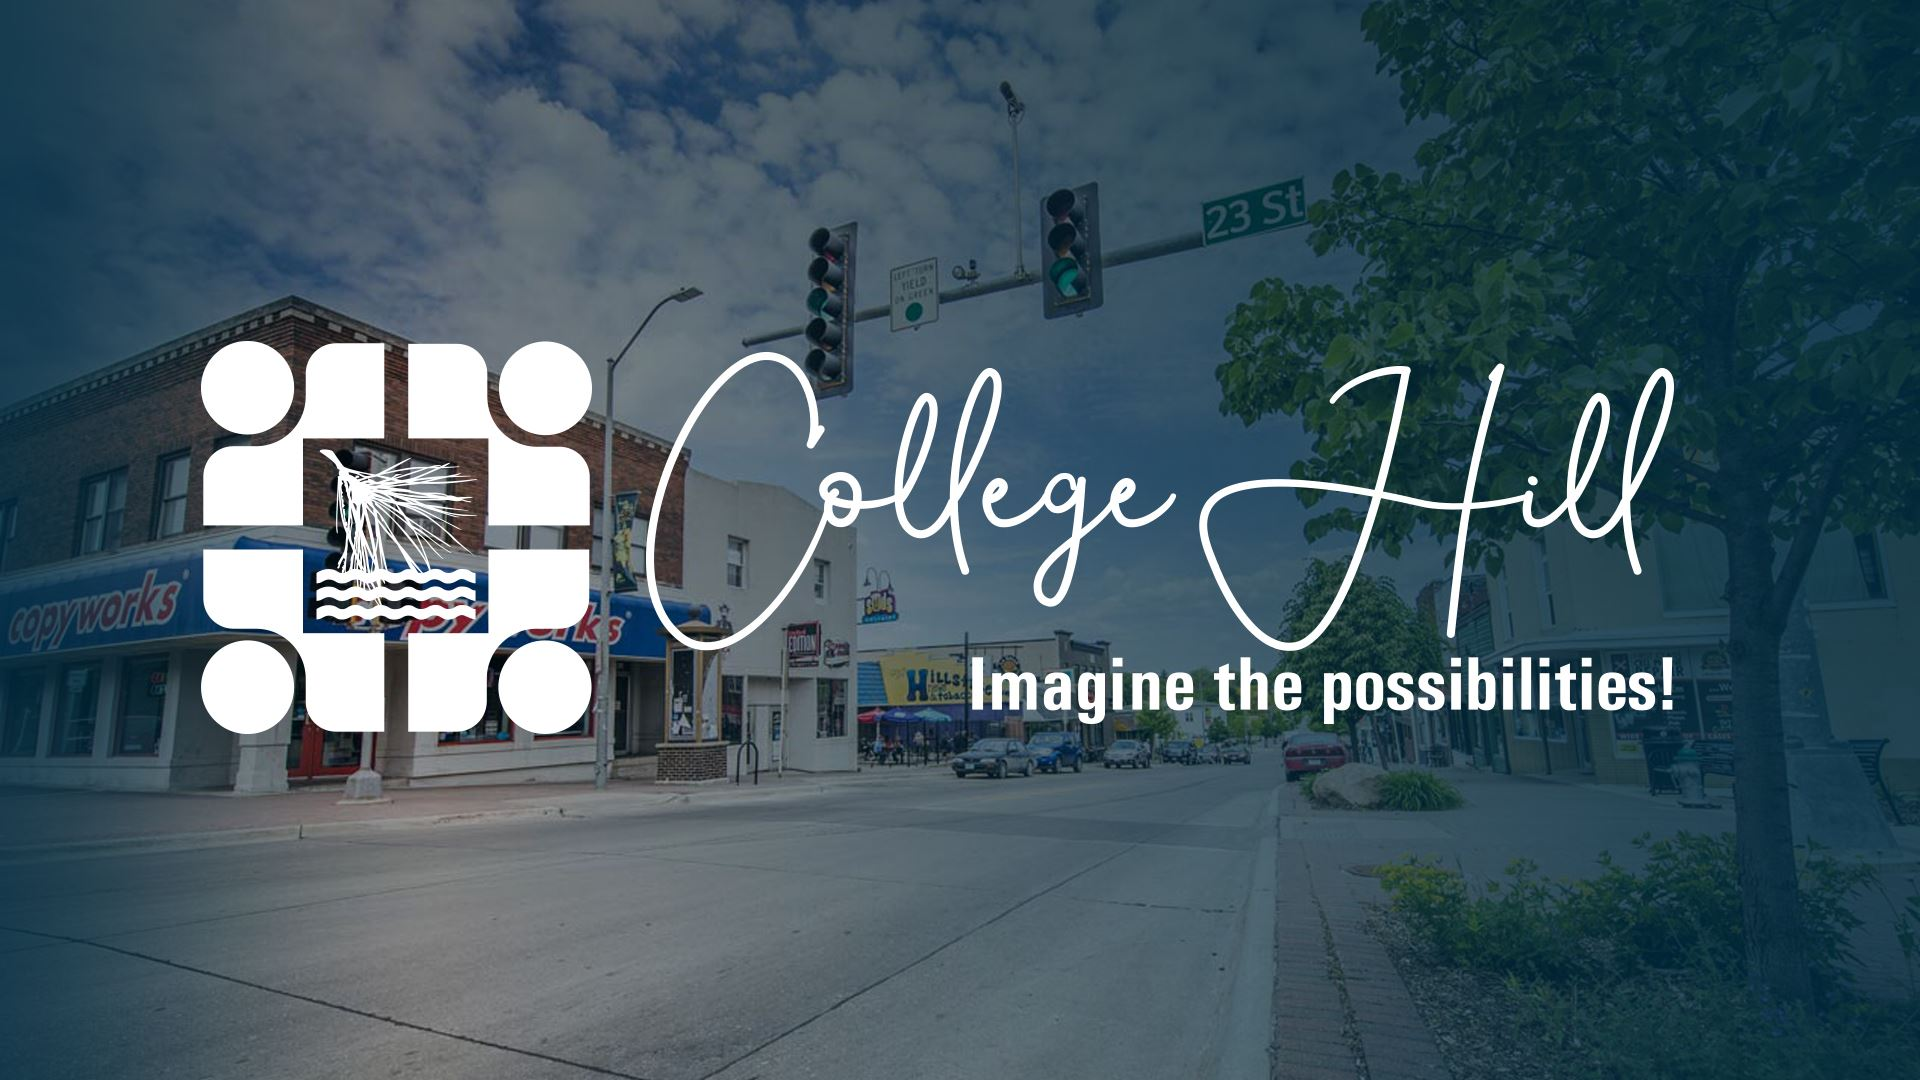 College Hill visioning